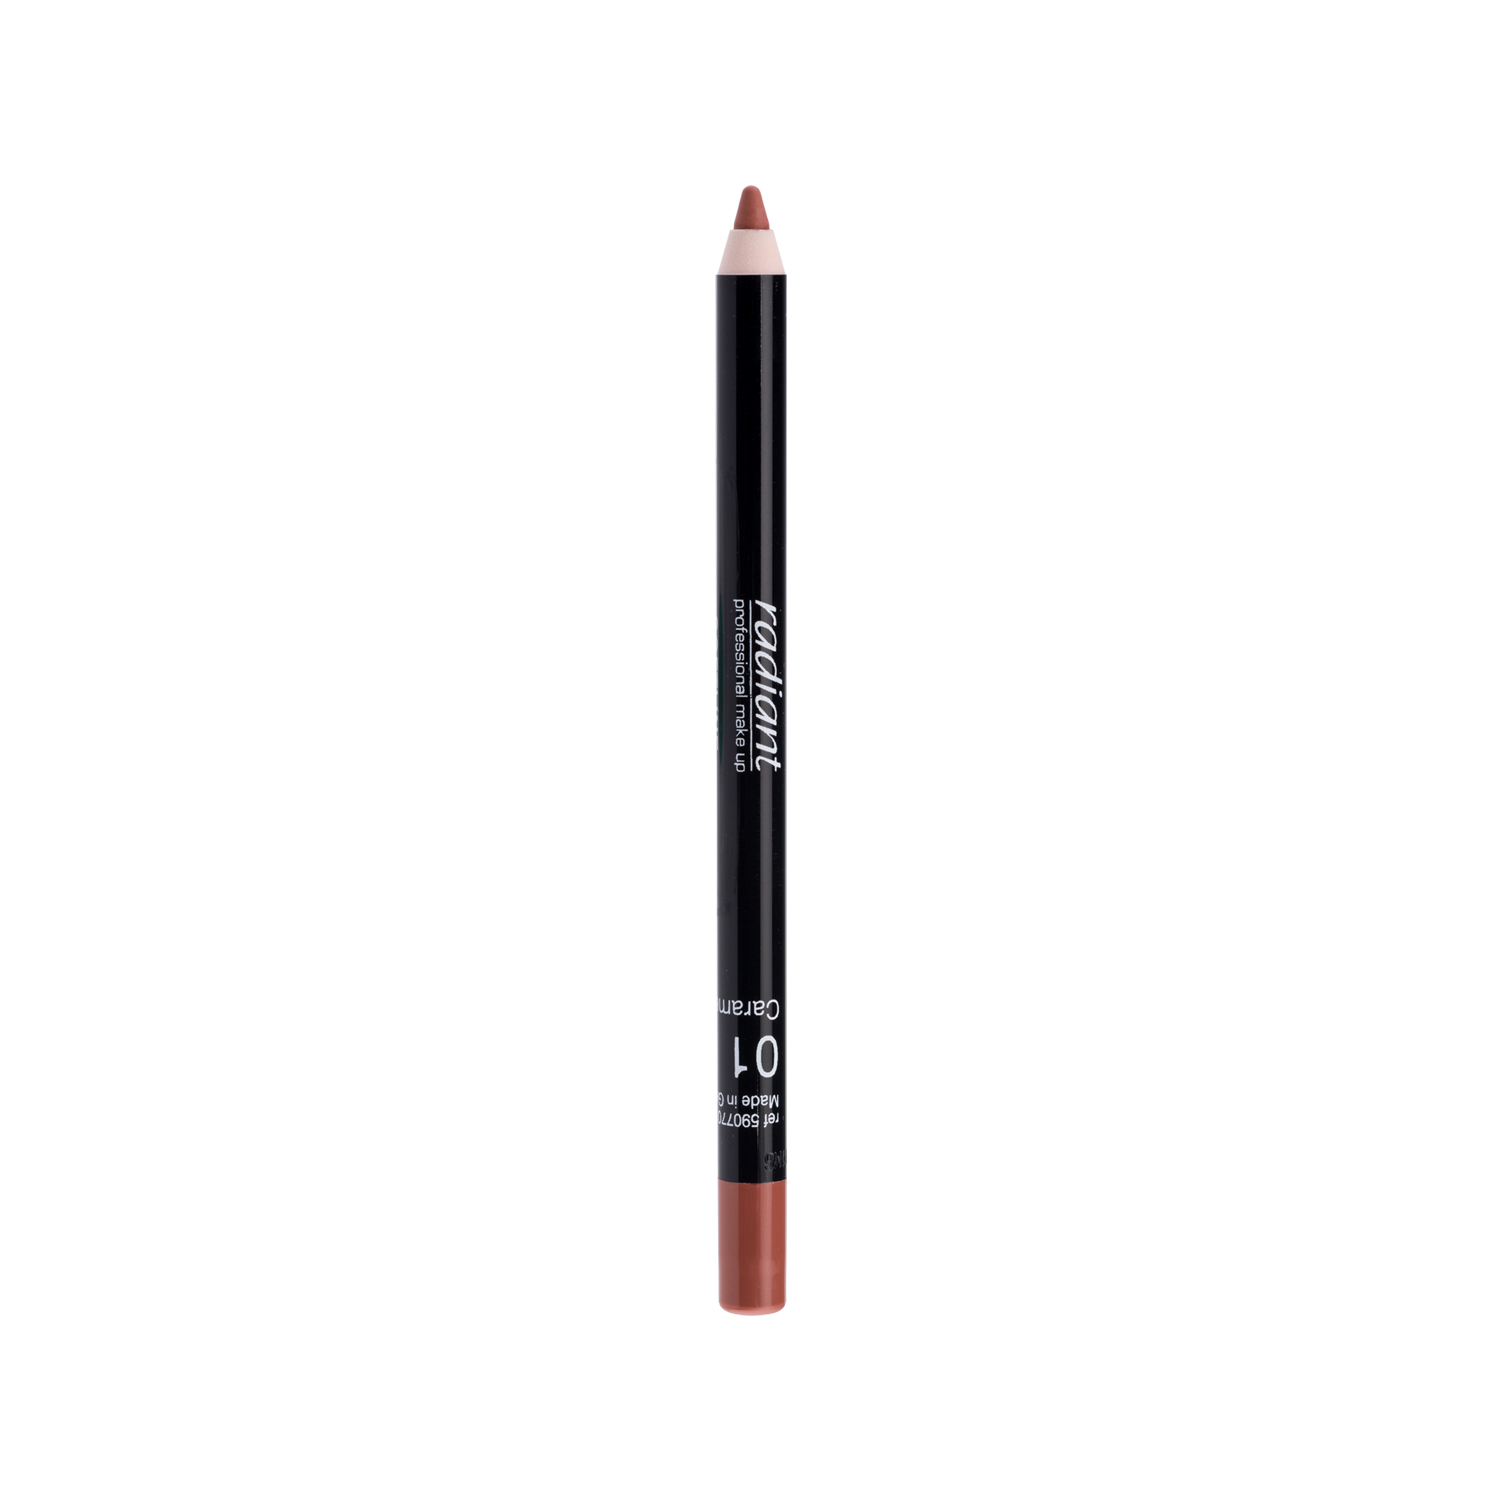 SOFTLINE WATERPROOF LIP PENCIL